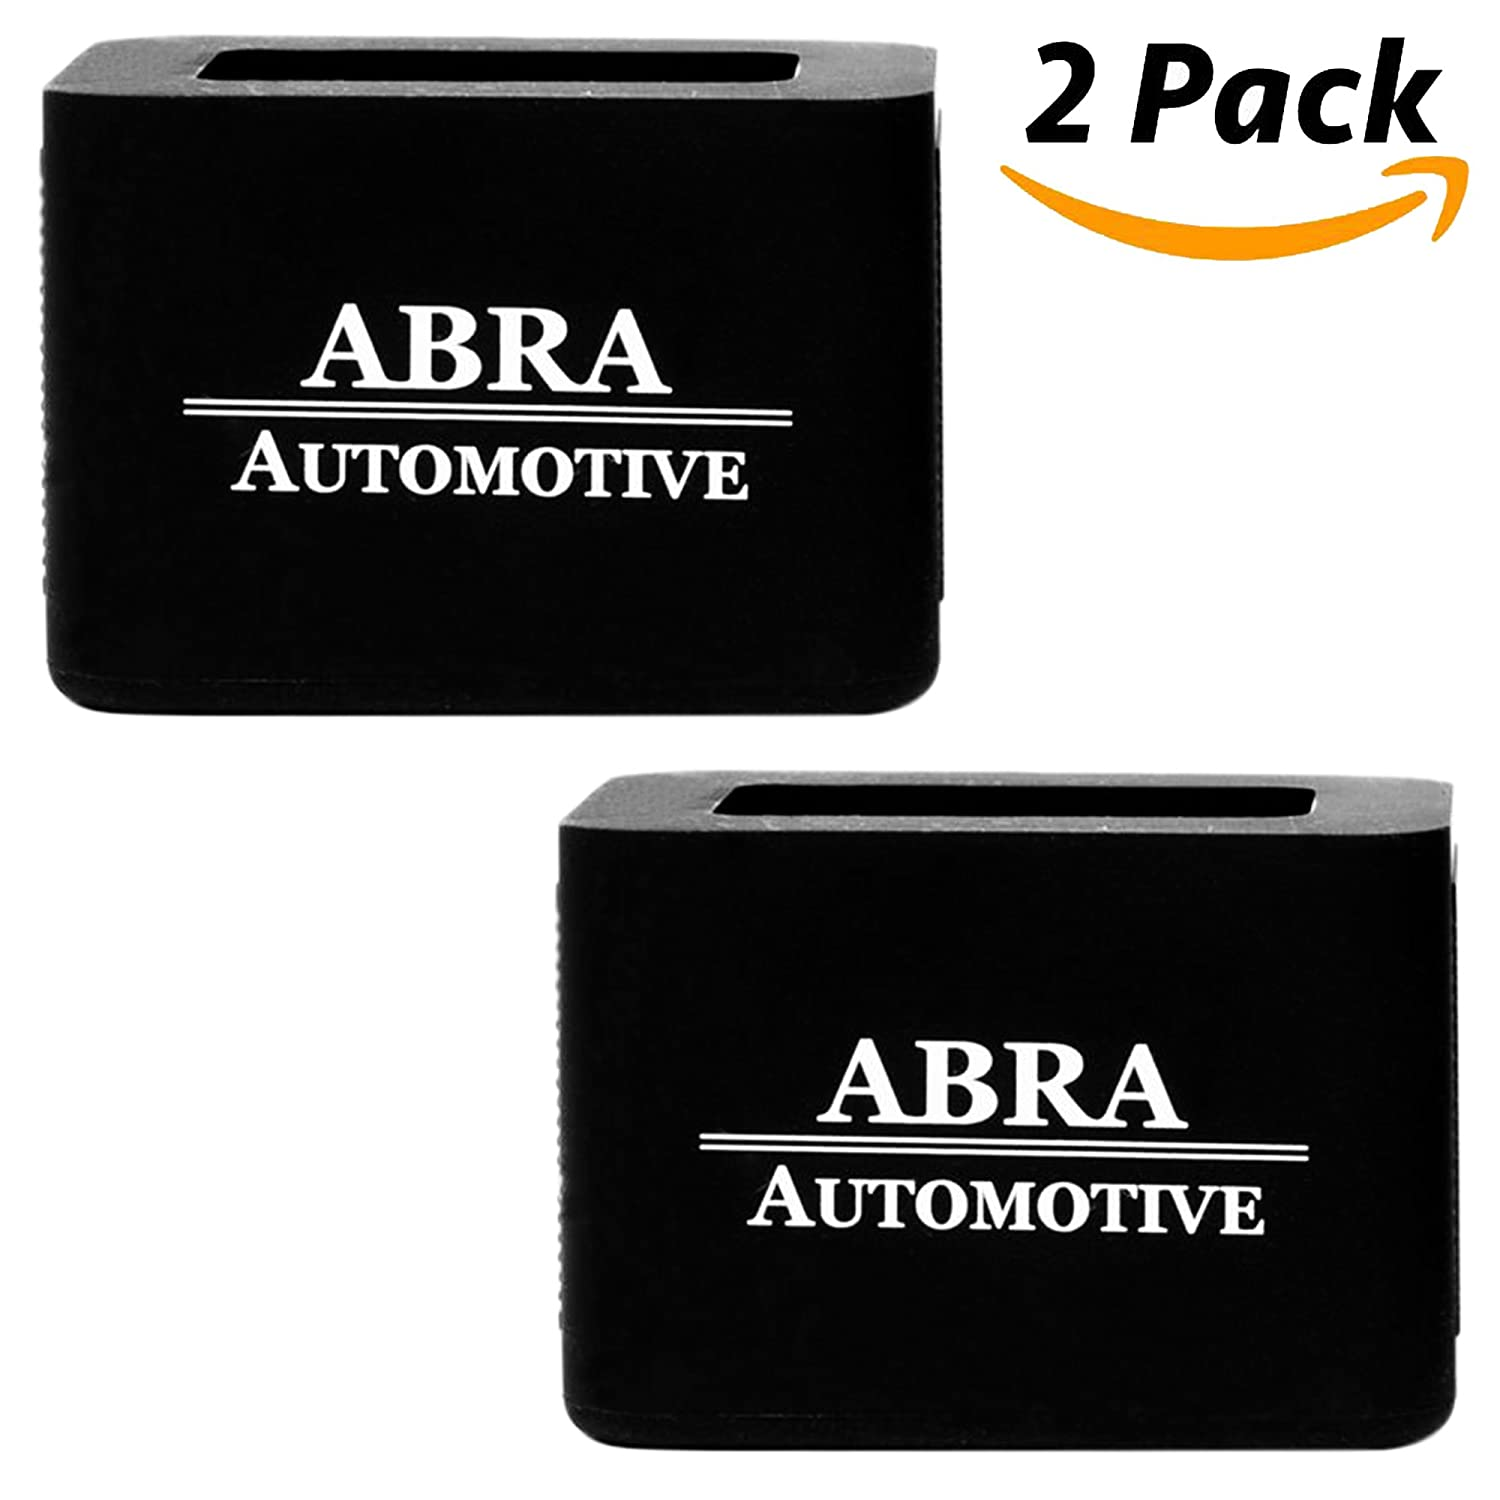 2 Pack Car Seat Belt Buckle Holder by Abra Automotive: New 2018 Model, Durable Silicone, Holds Seat Belt Buckle In Upright Position For Easier Buckling For Kids, Adults, And Elderly, Easy Installation